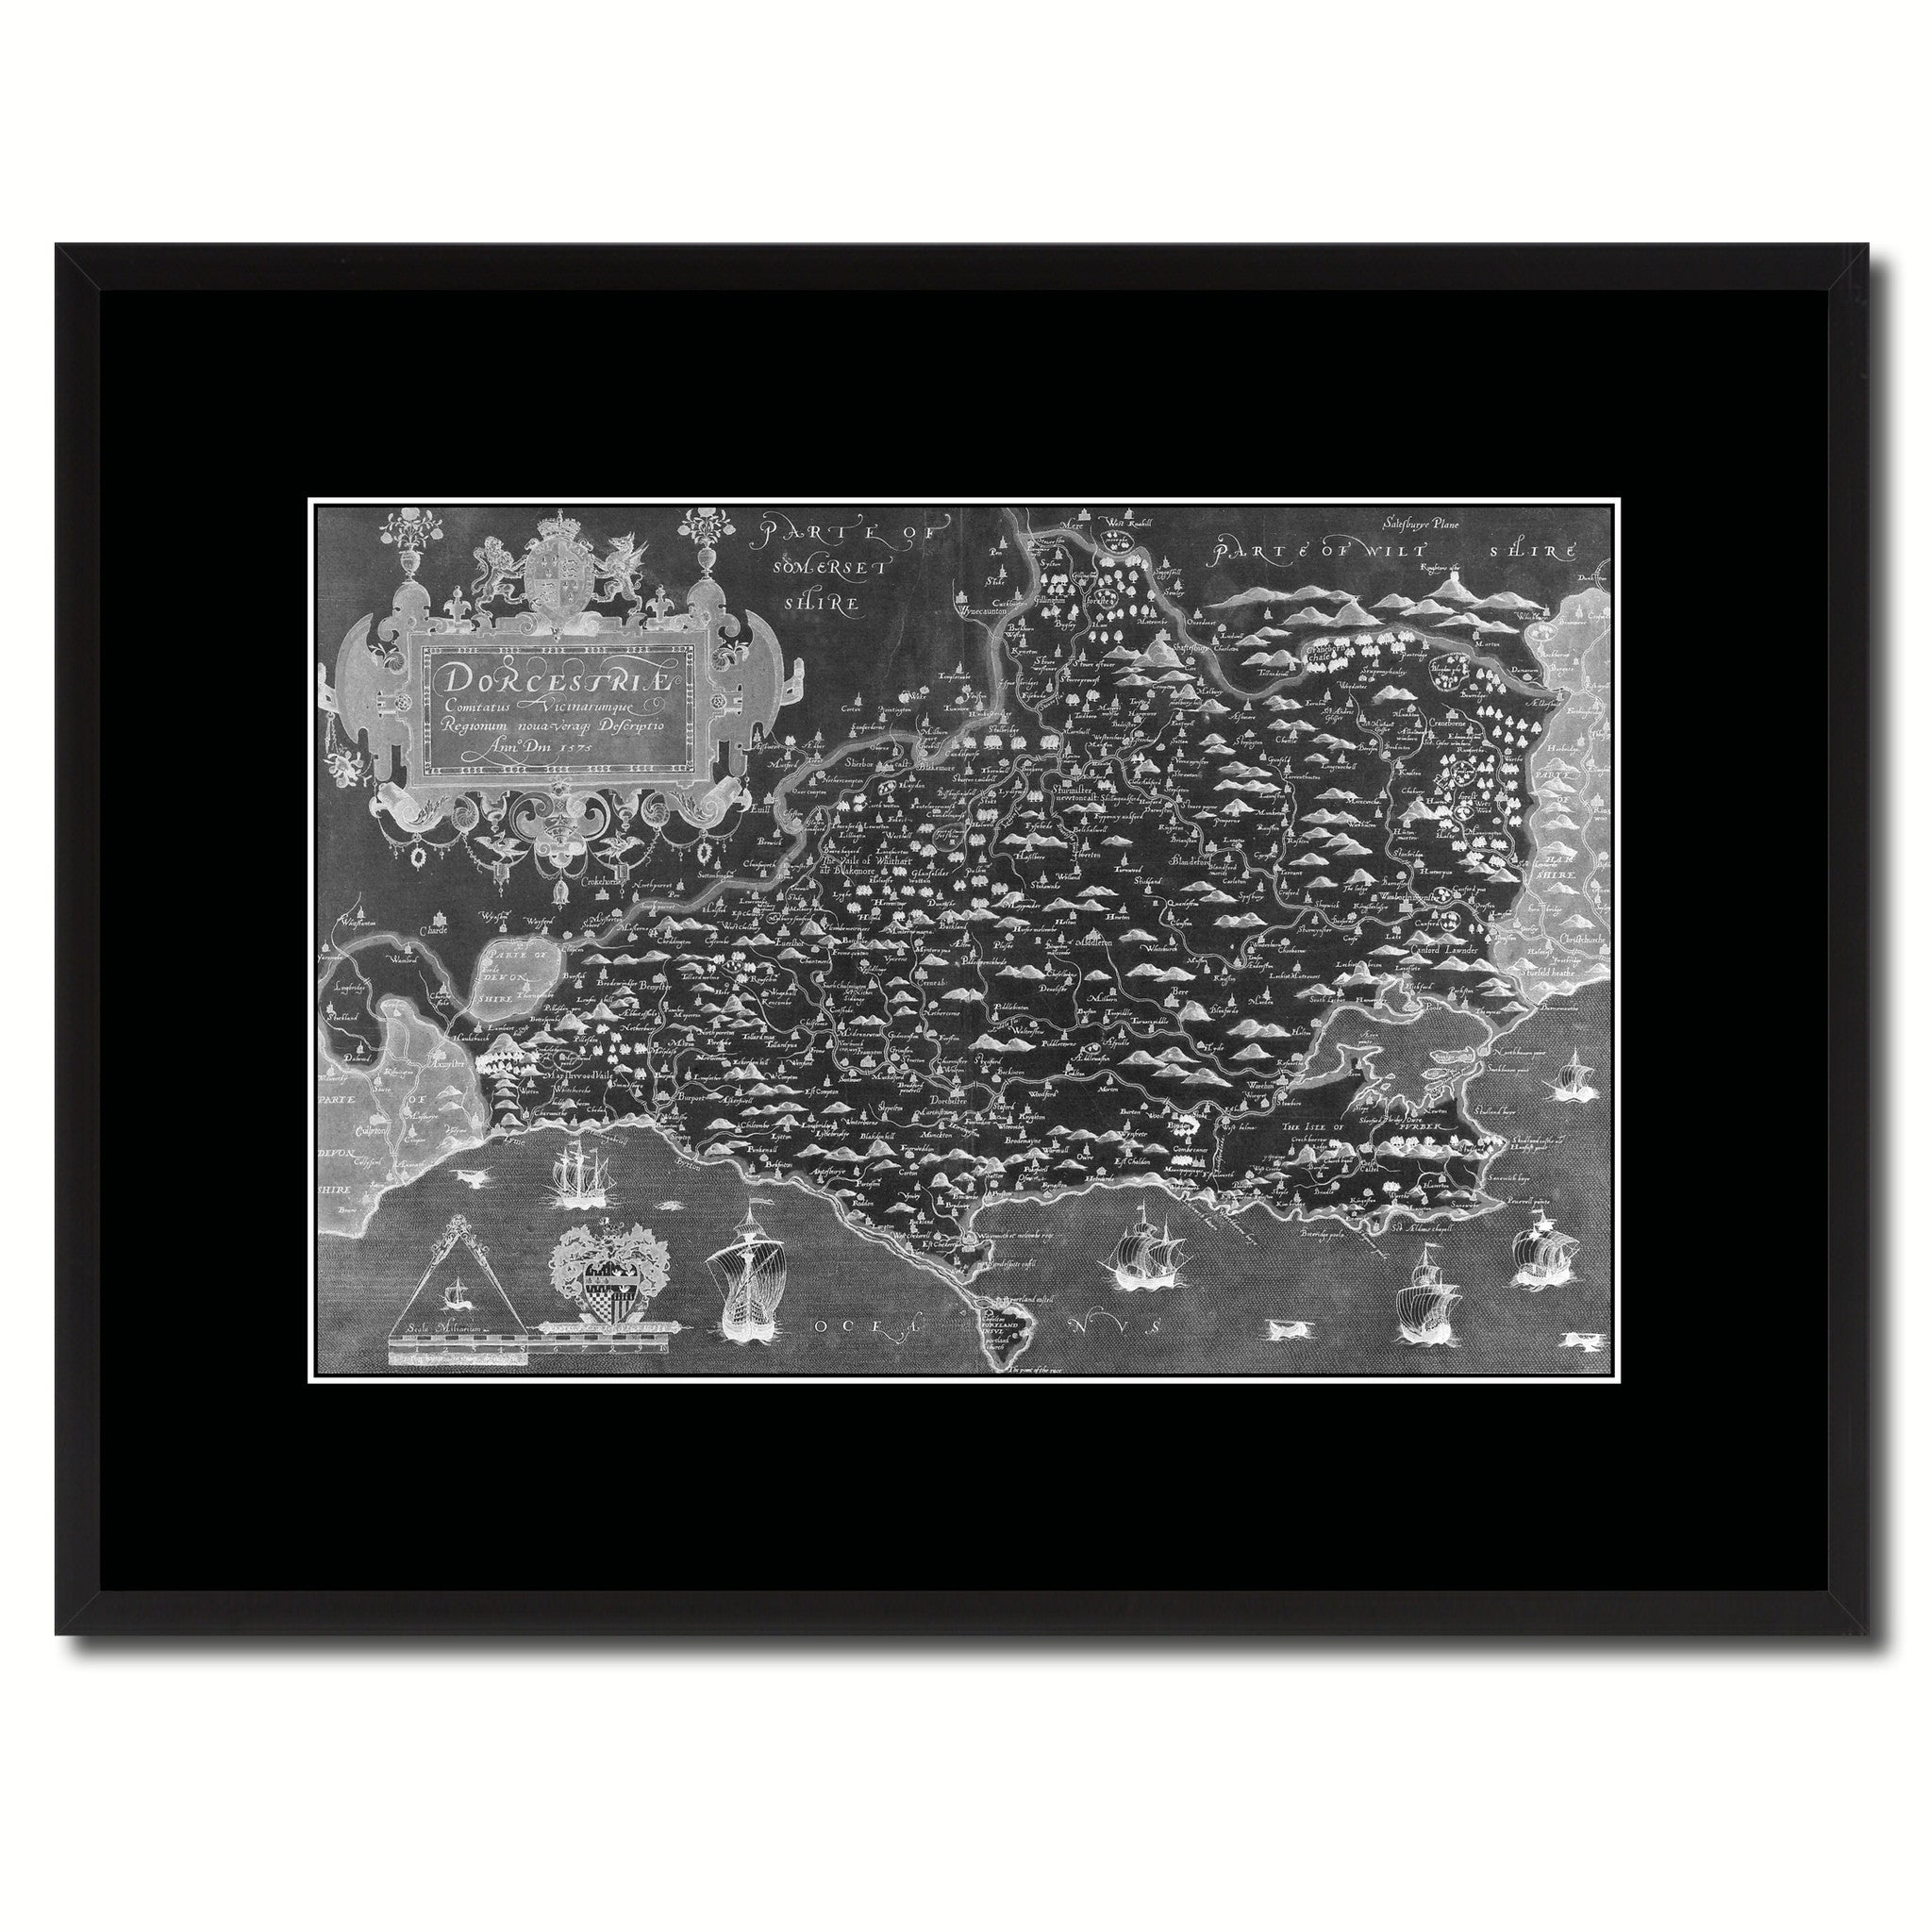 Atlas Of England & Wales Vintage Monochrome Map Canvas Print, Gifts Picture Frames Home Decor Wall Art